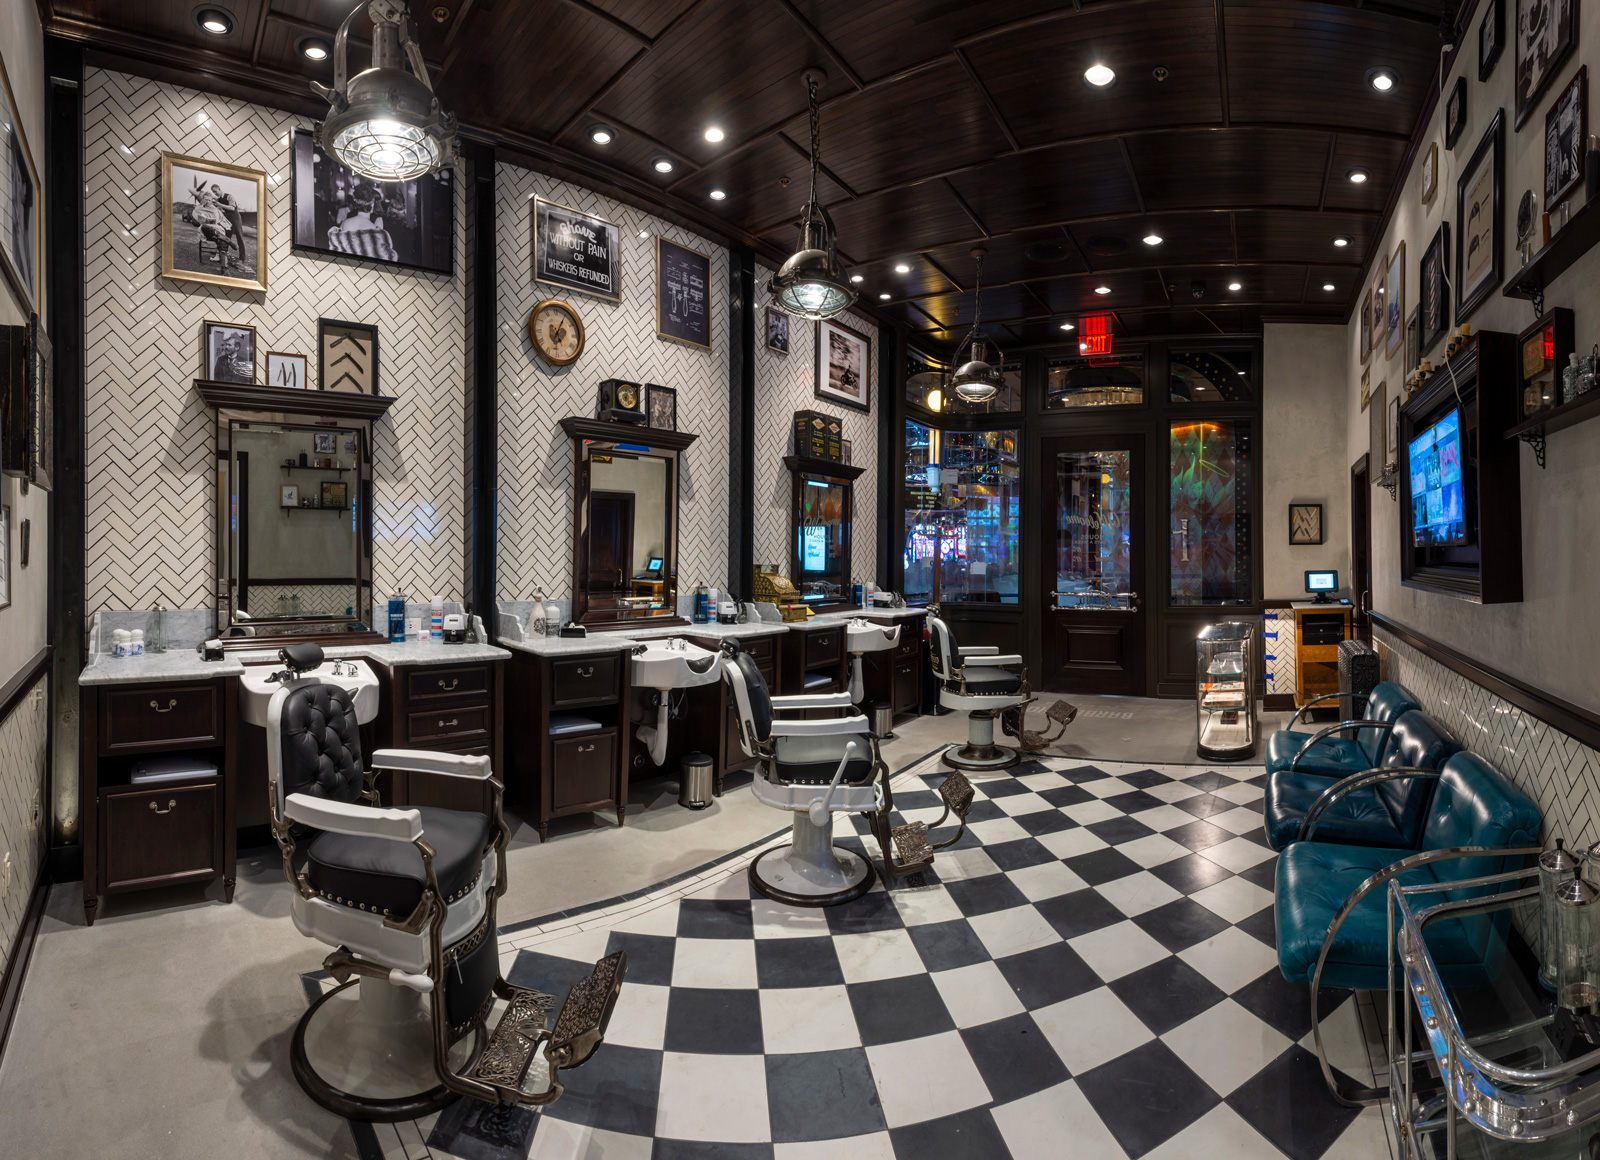 barbershop cuts & cocktails interior - las vegas speakeasy